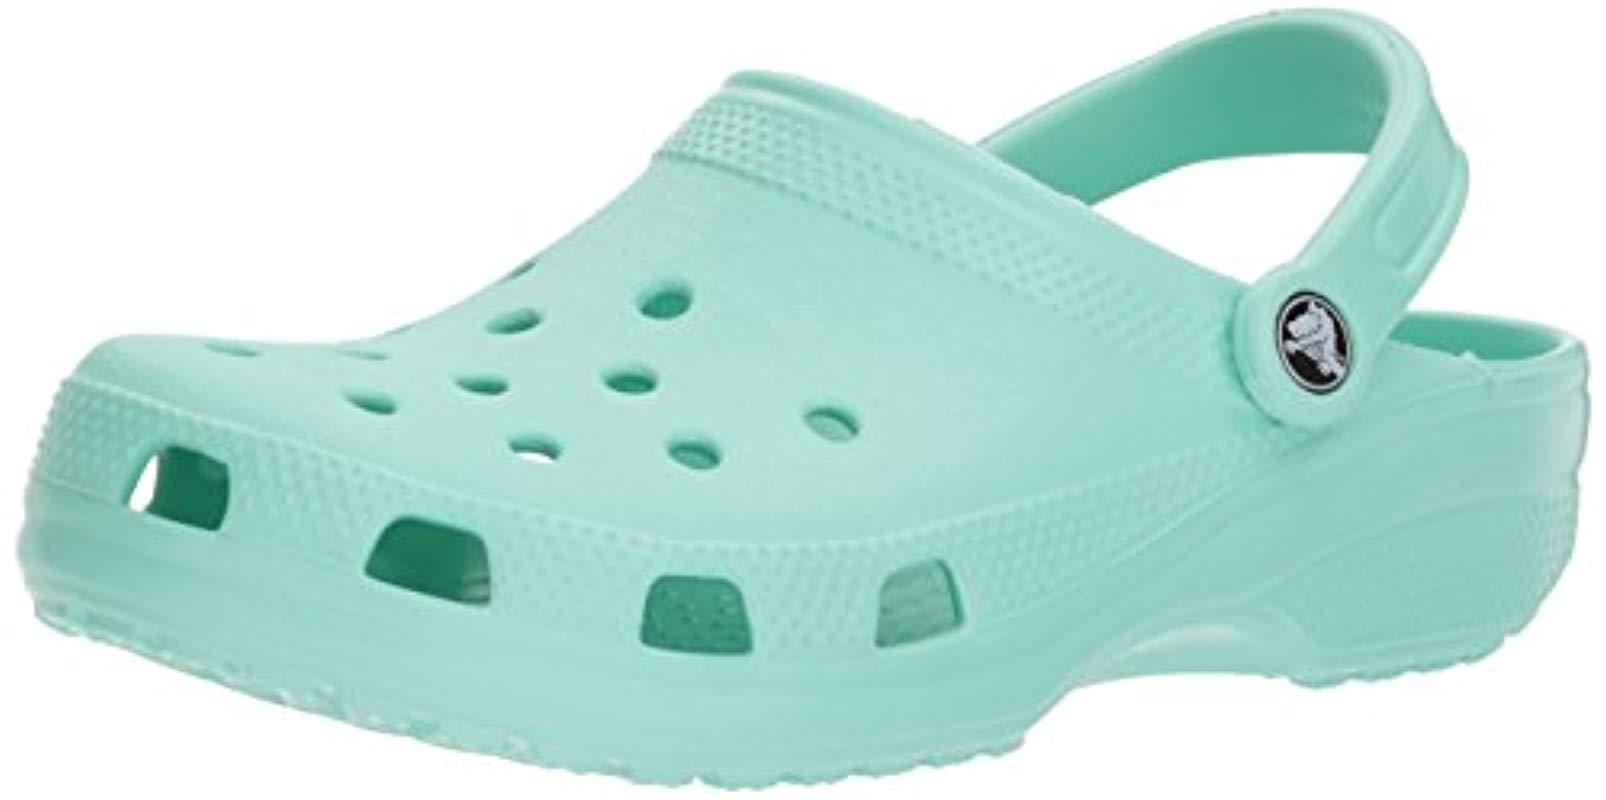 9b5a0a58853c Crocs™ Unisex Adults  Classic Clogs in Green - Lyst